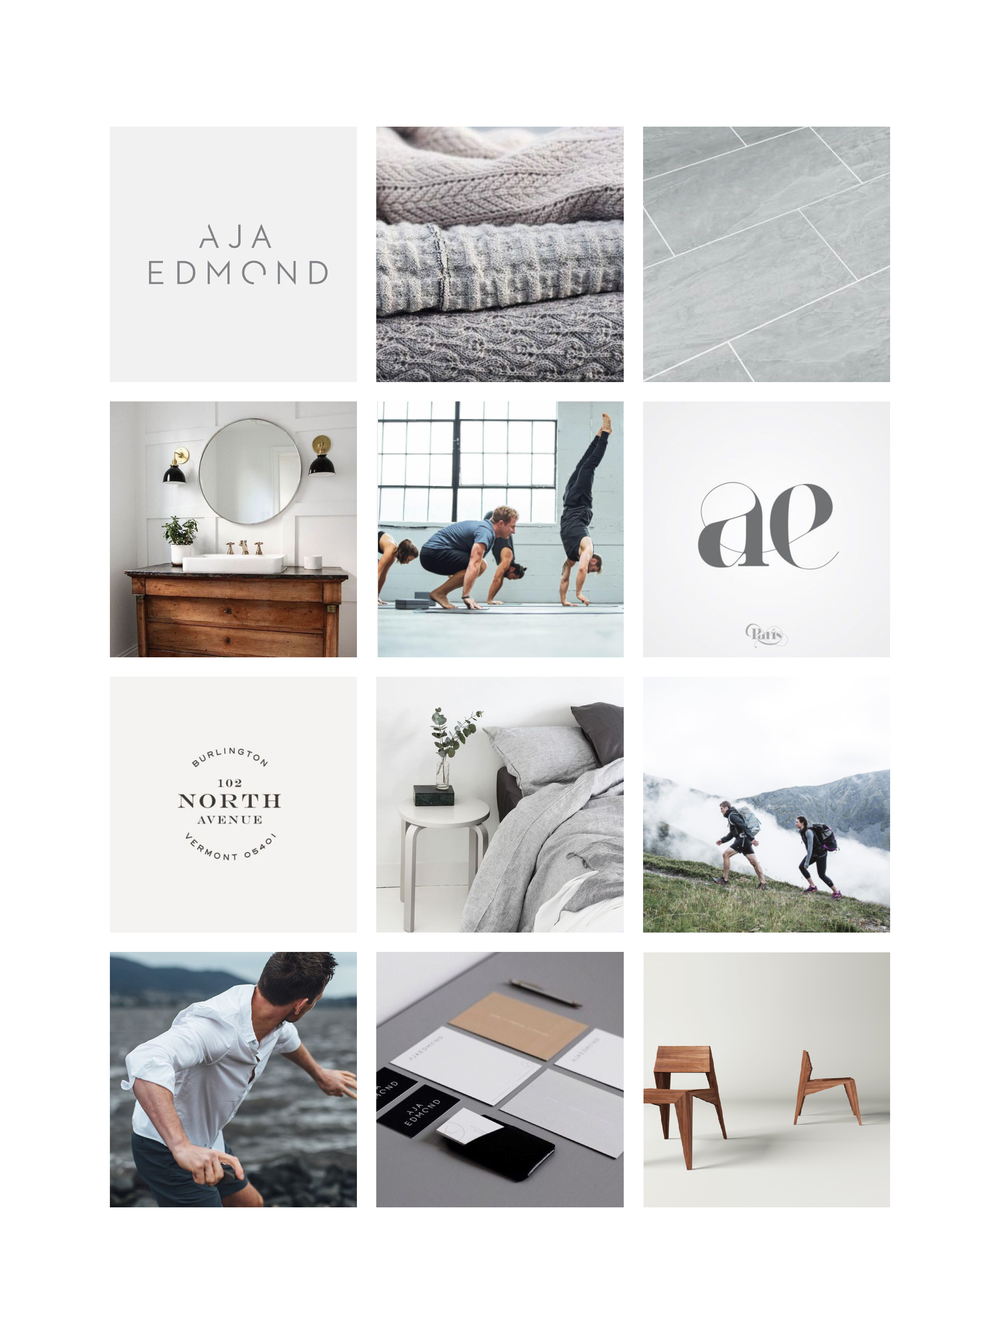 MOOD BOARD 1:  NEUTRAL, AIRY, LIGHT & FRESH TONES, SIMPLISTIC DESIGN, MIX OF TRADITION AND MODERNITY, ELEGANT, SLEEK & MODERN TYPOGRAPHY